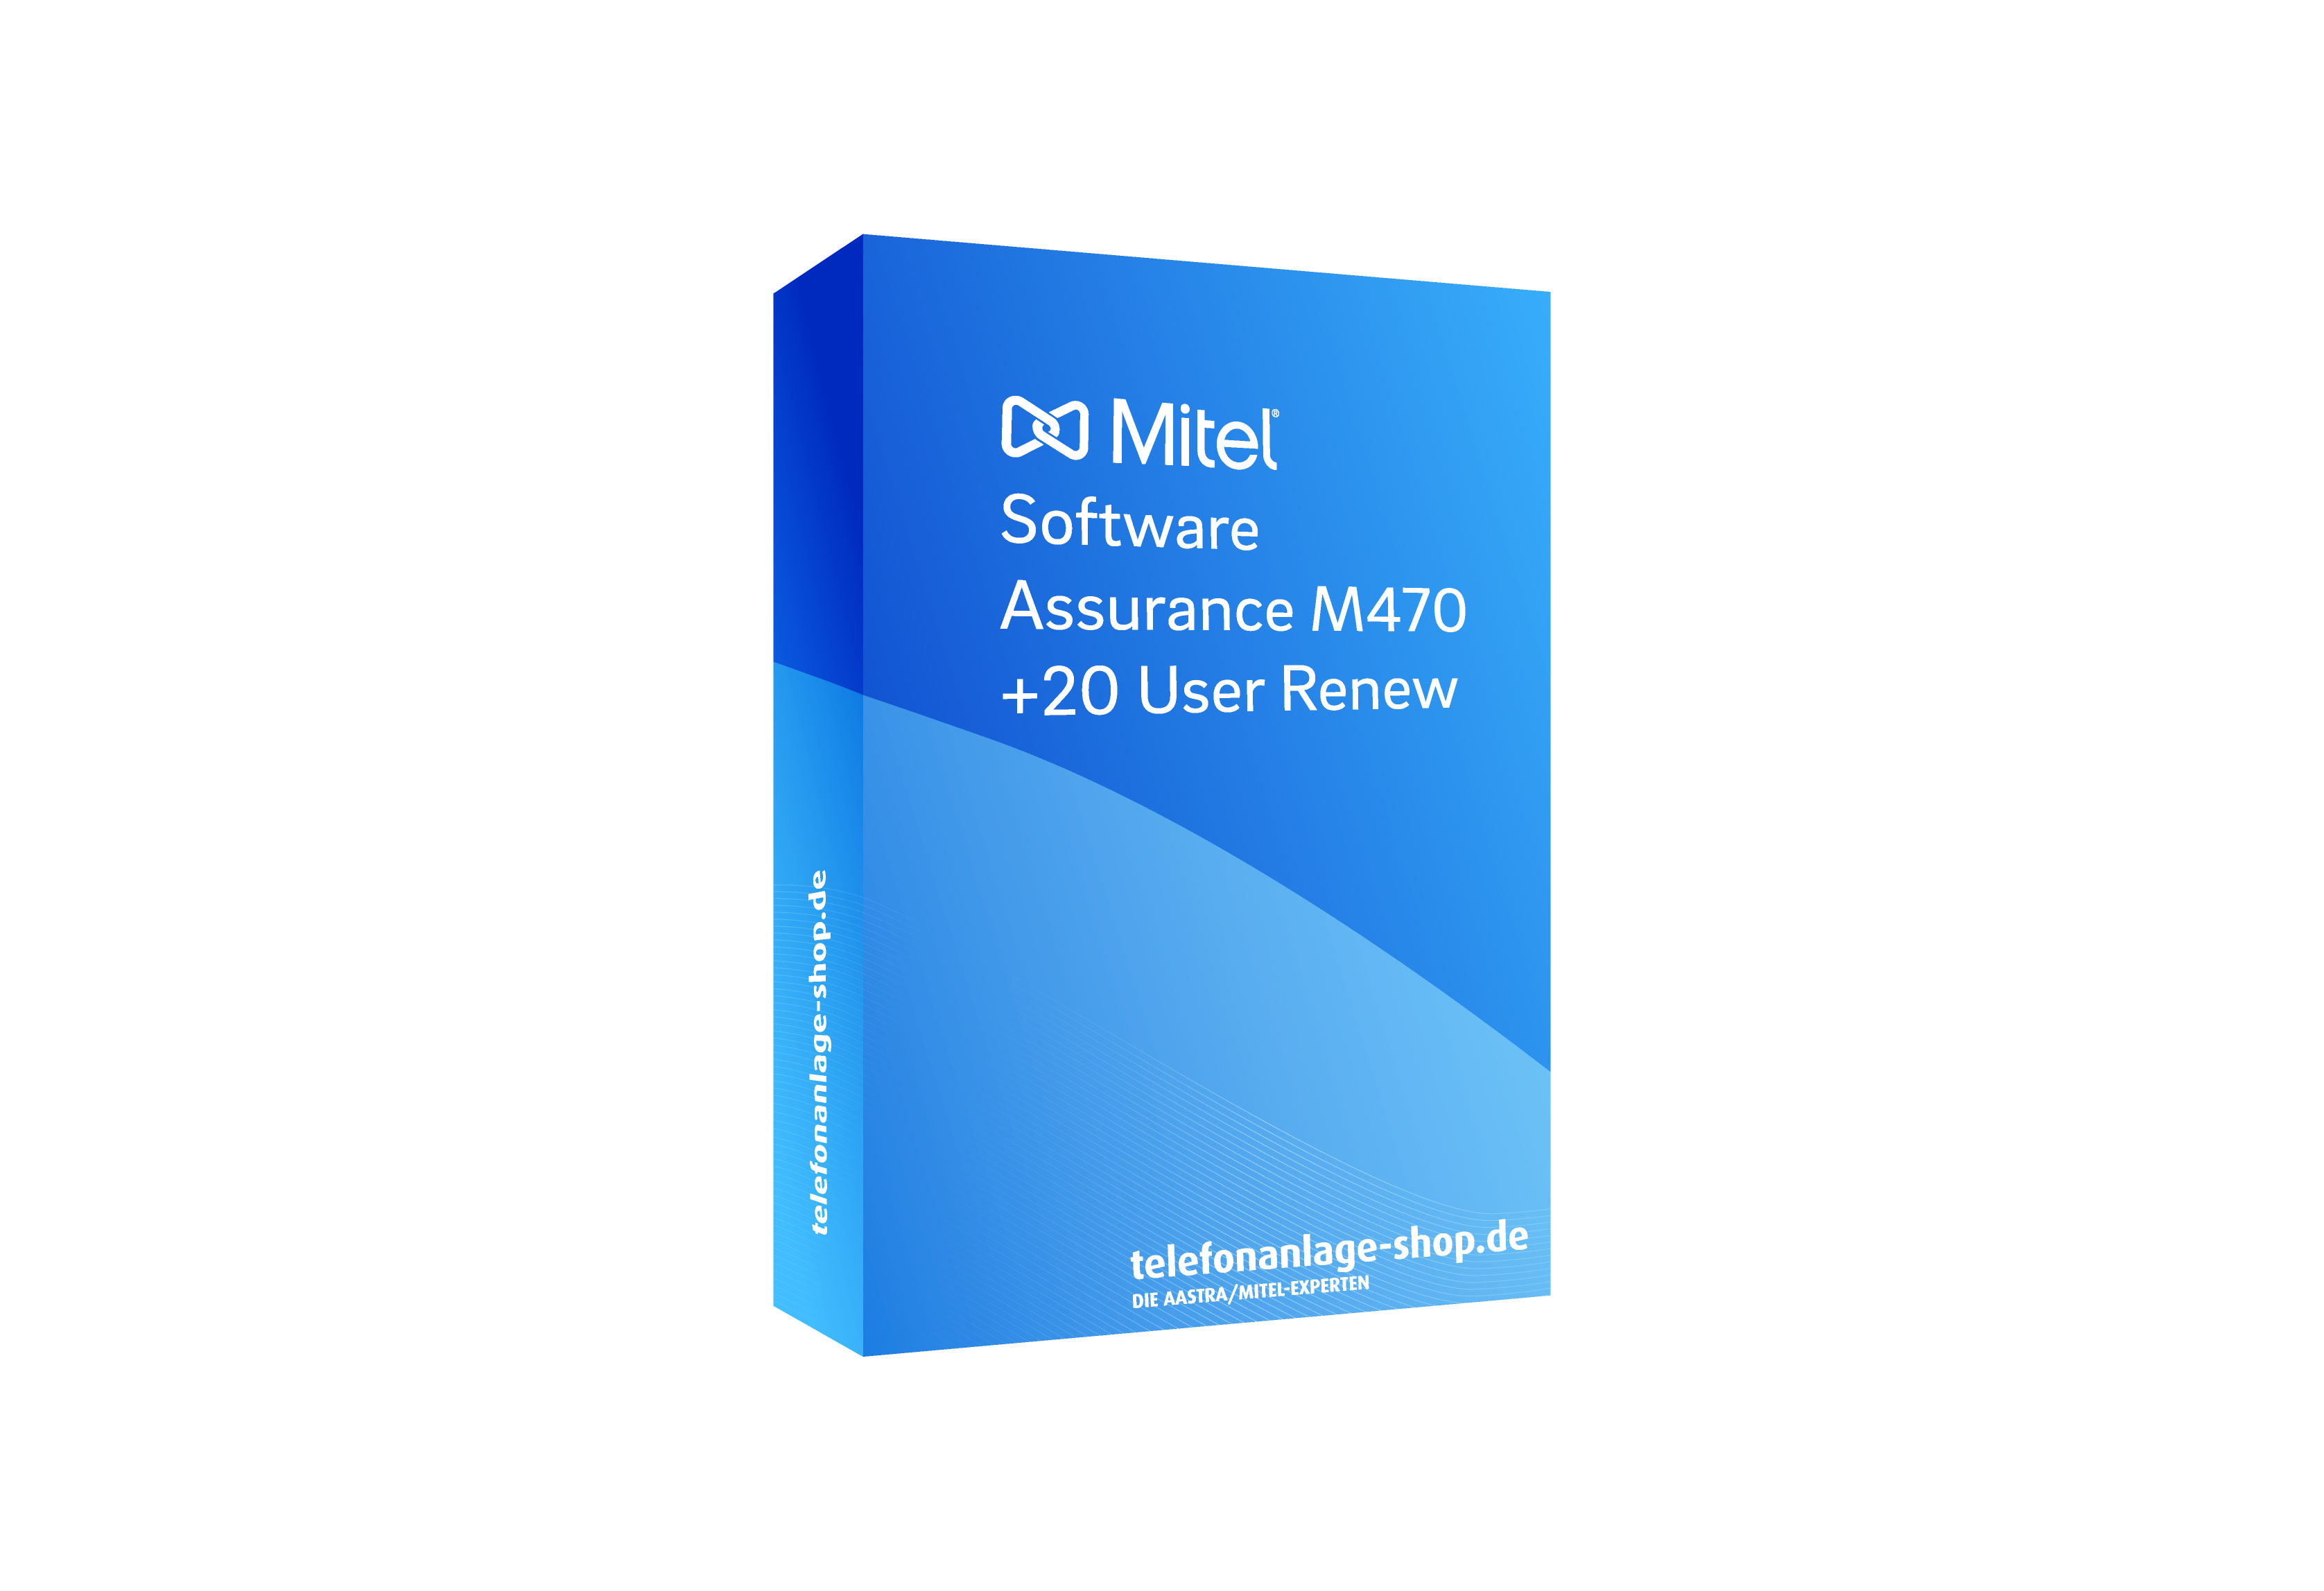 Produktbild - Mitel Software Assurance M470 +20User Renew